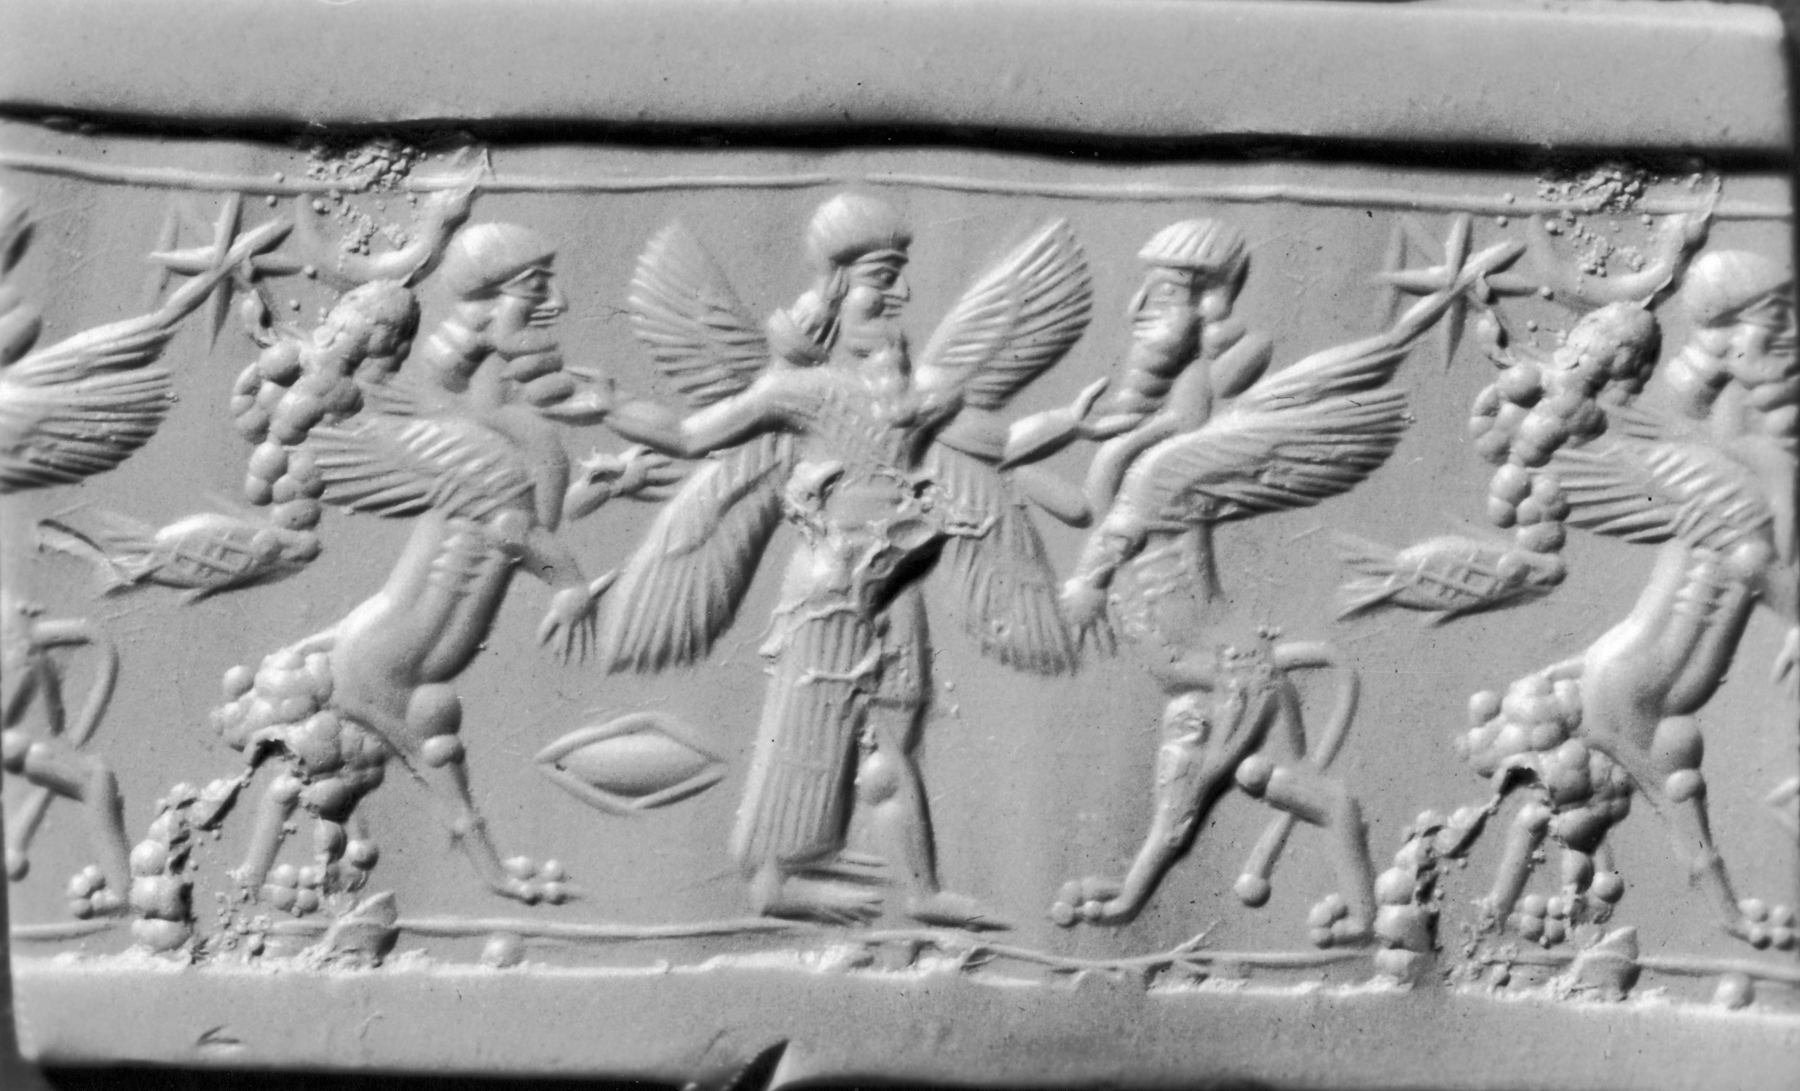 File:Mesopotamian - Cylinder Seal with Genius and Human ...